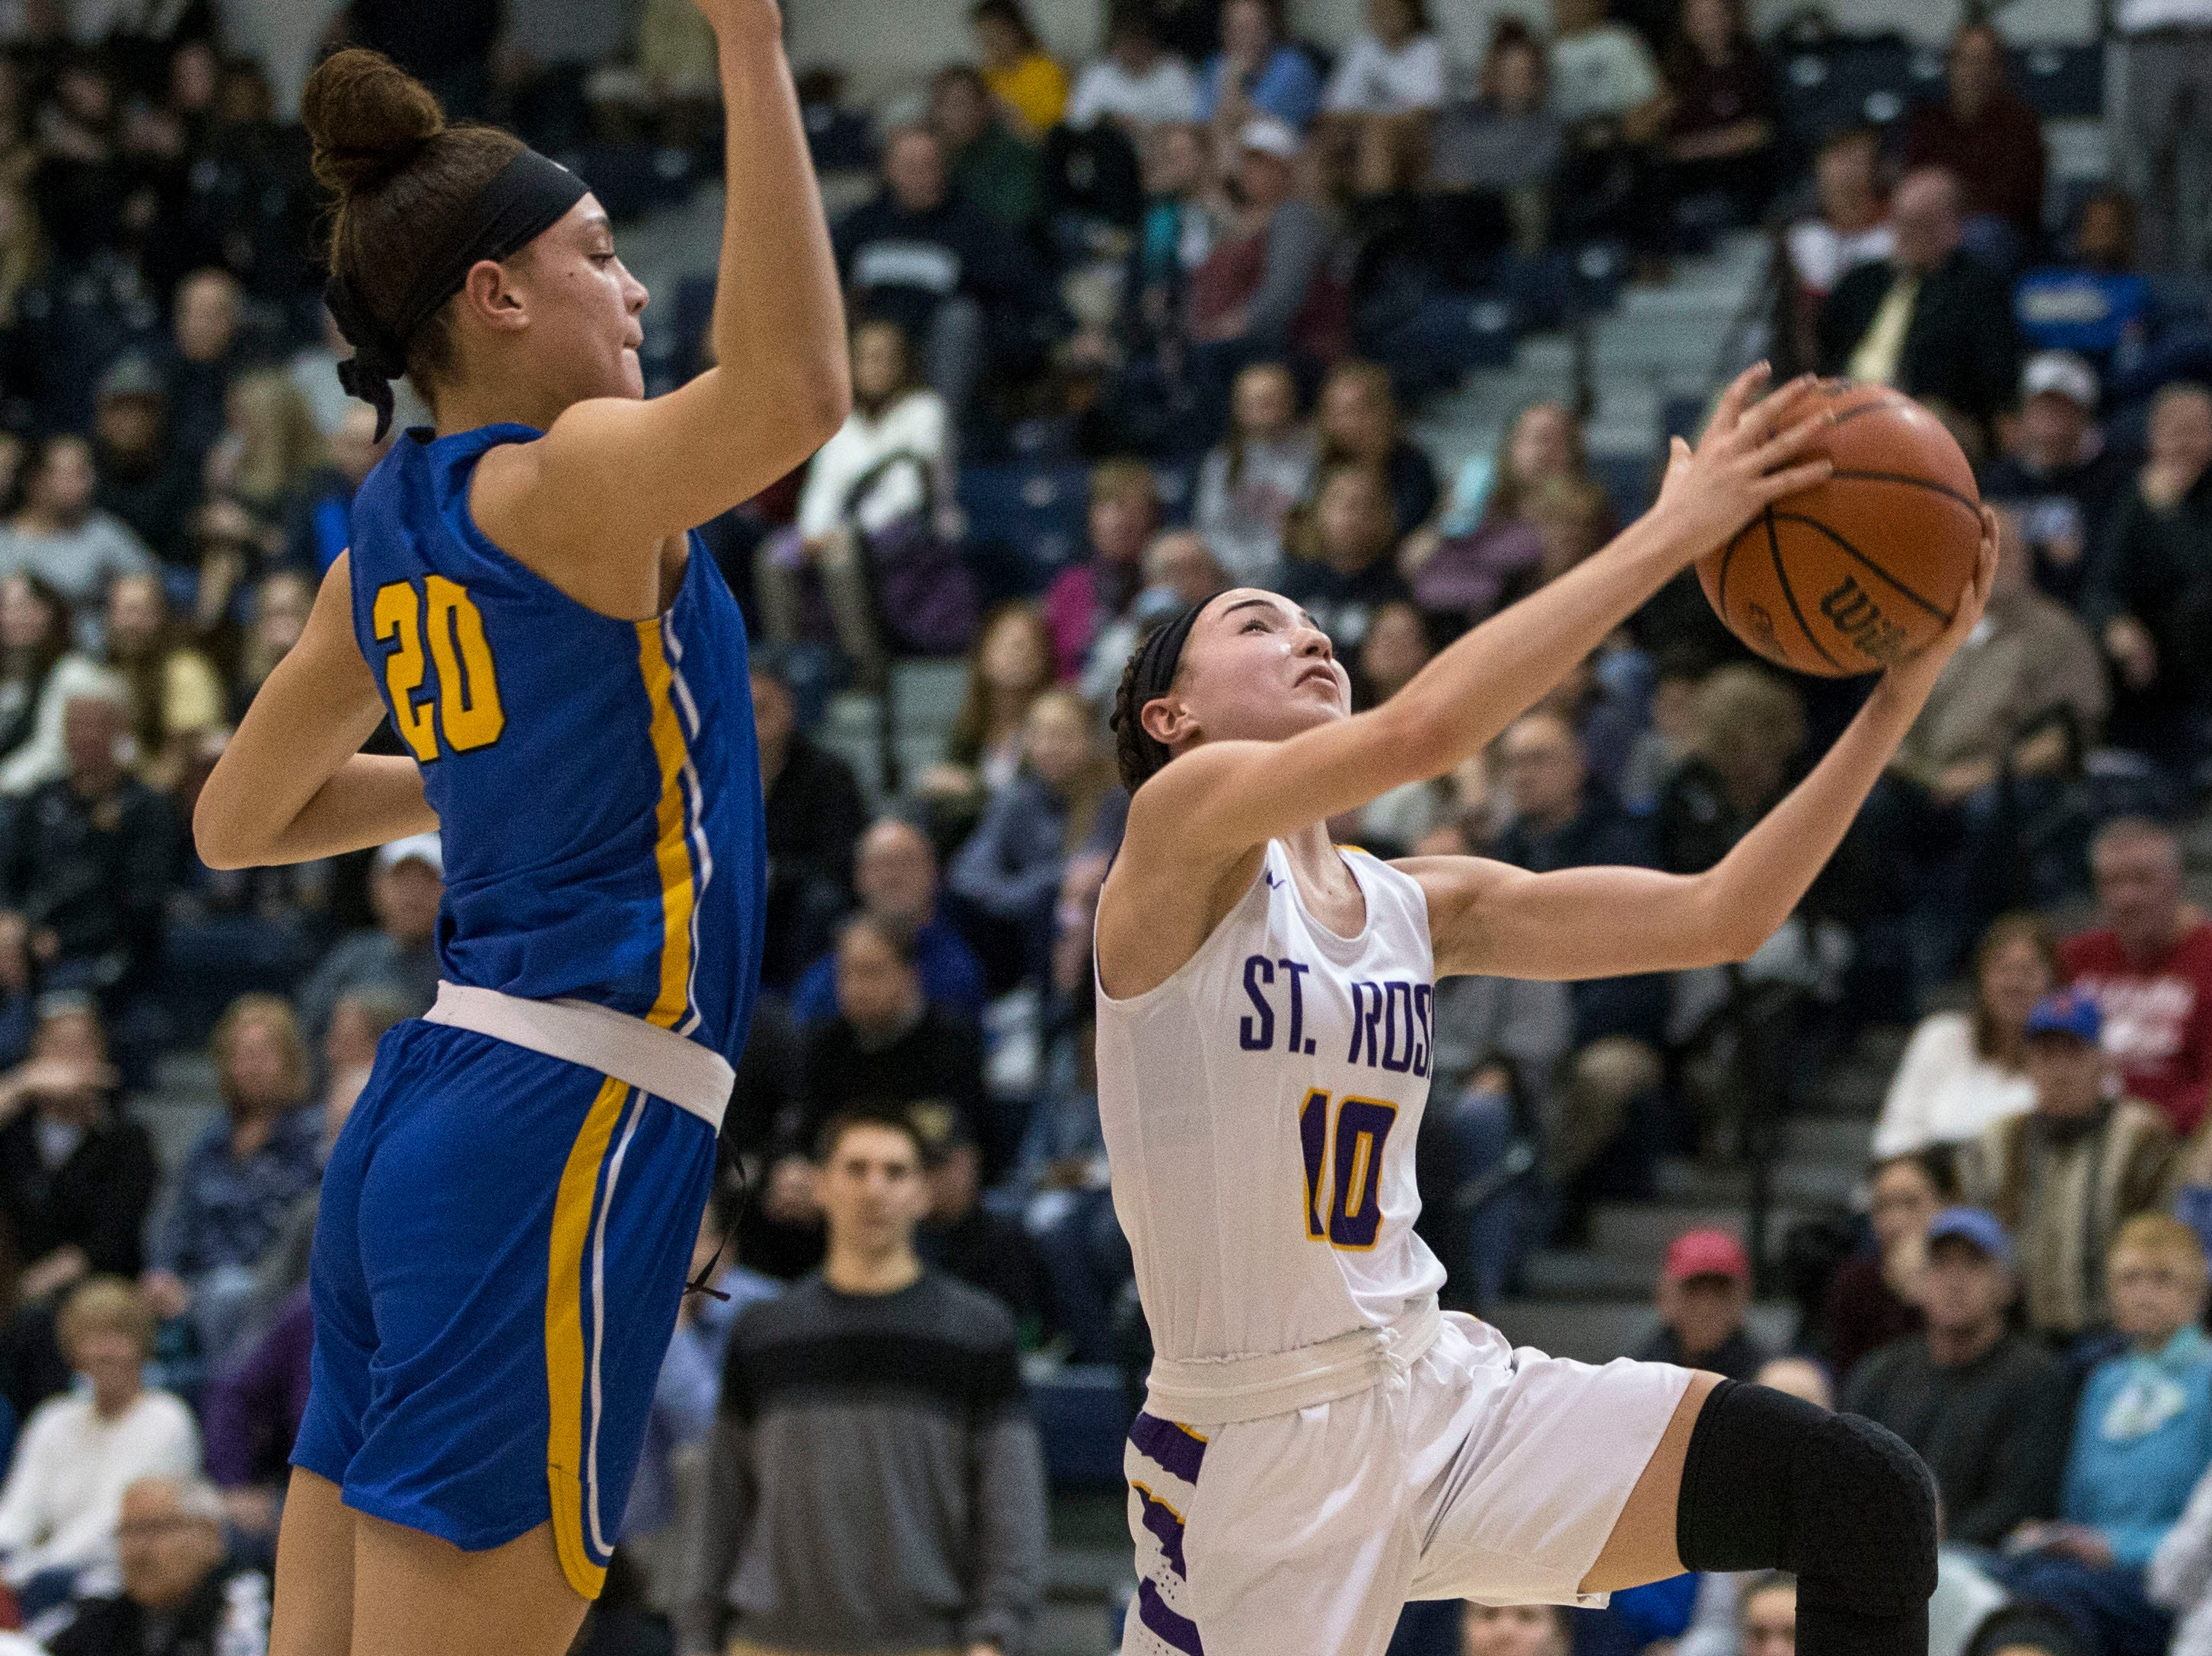 Shore Conference Tournament semifinals featuring St. Rose vs Manchester. St. Rose's Abigail Antognoli shoots as Manchester's Destiny Adams defends.Toms River, NJTuesday, February 19, 2019